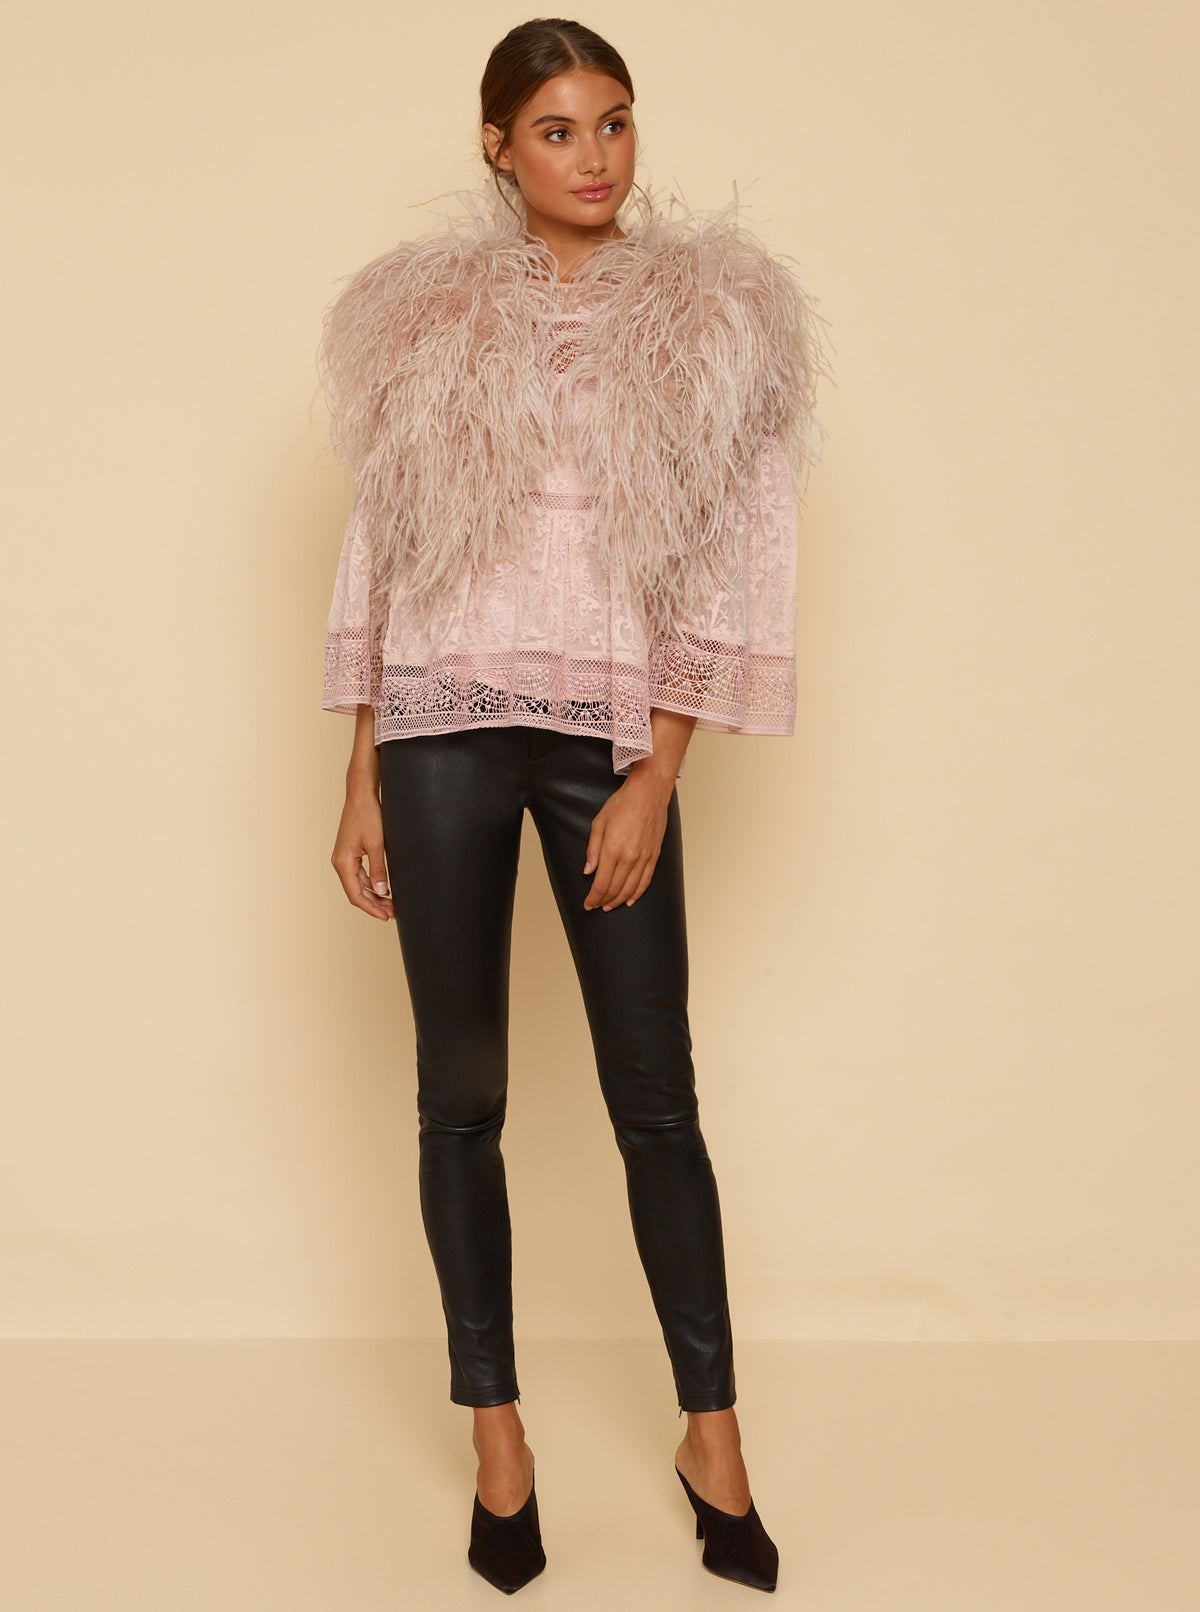 One Look Ostrich Bolero Jacket - Smokey Pink